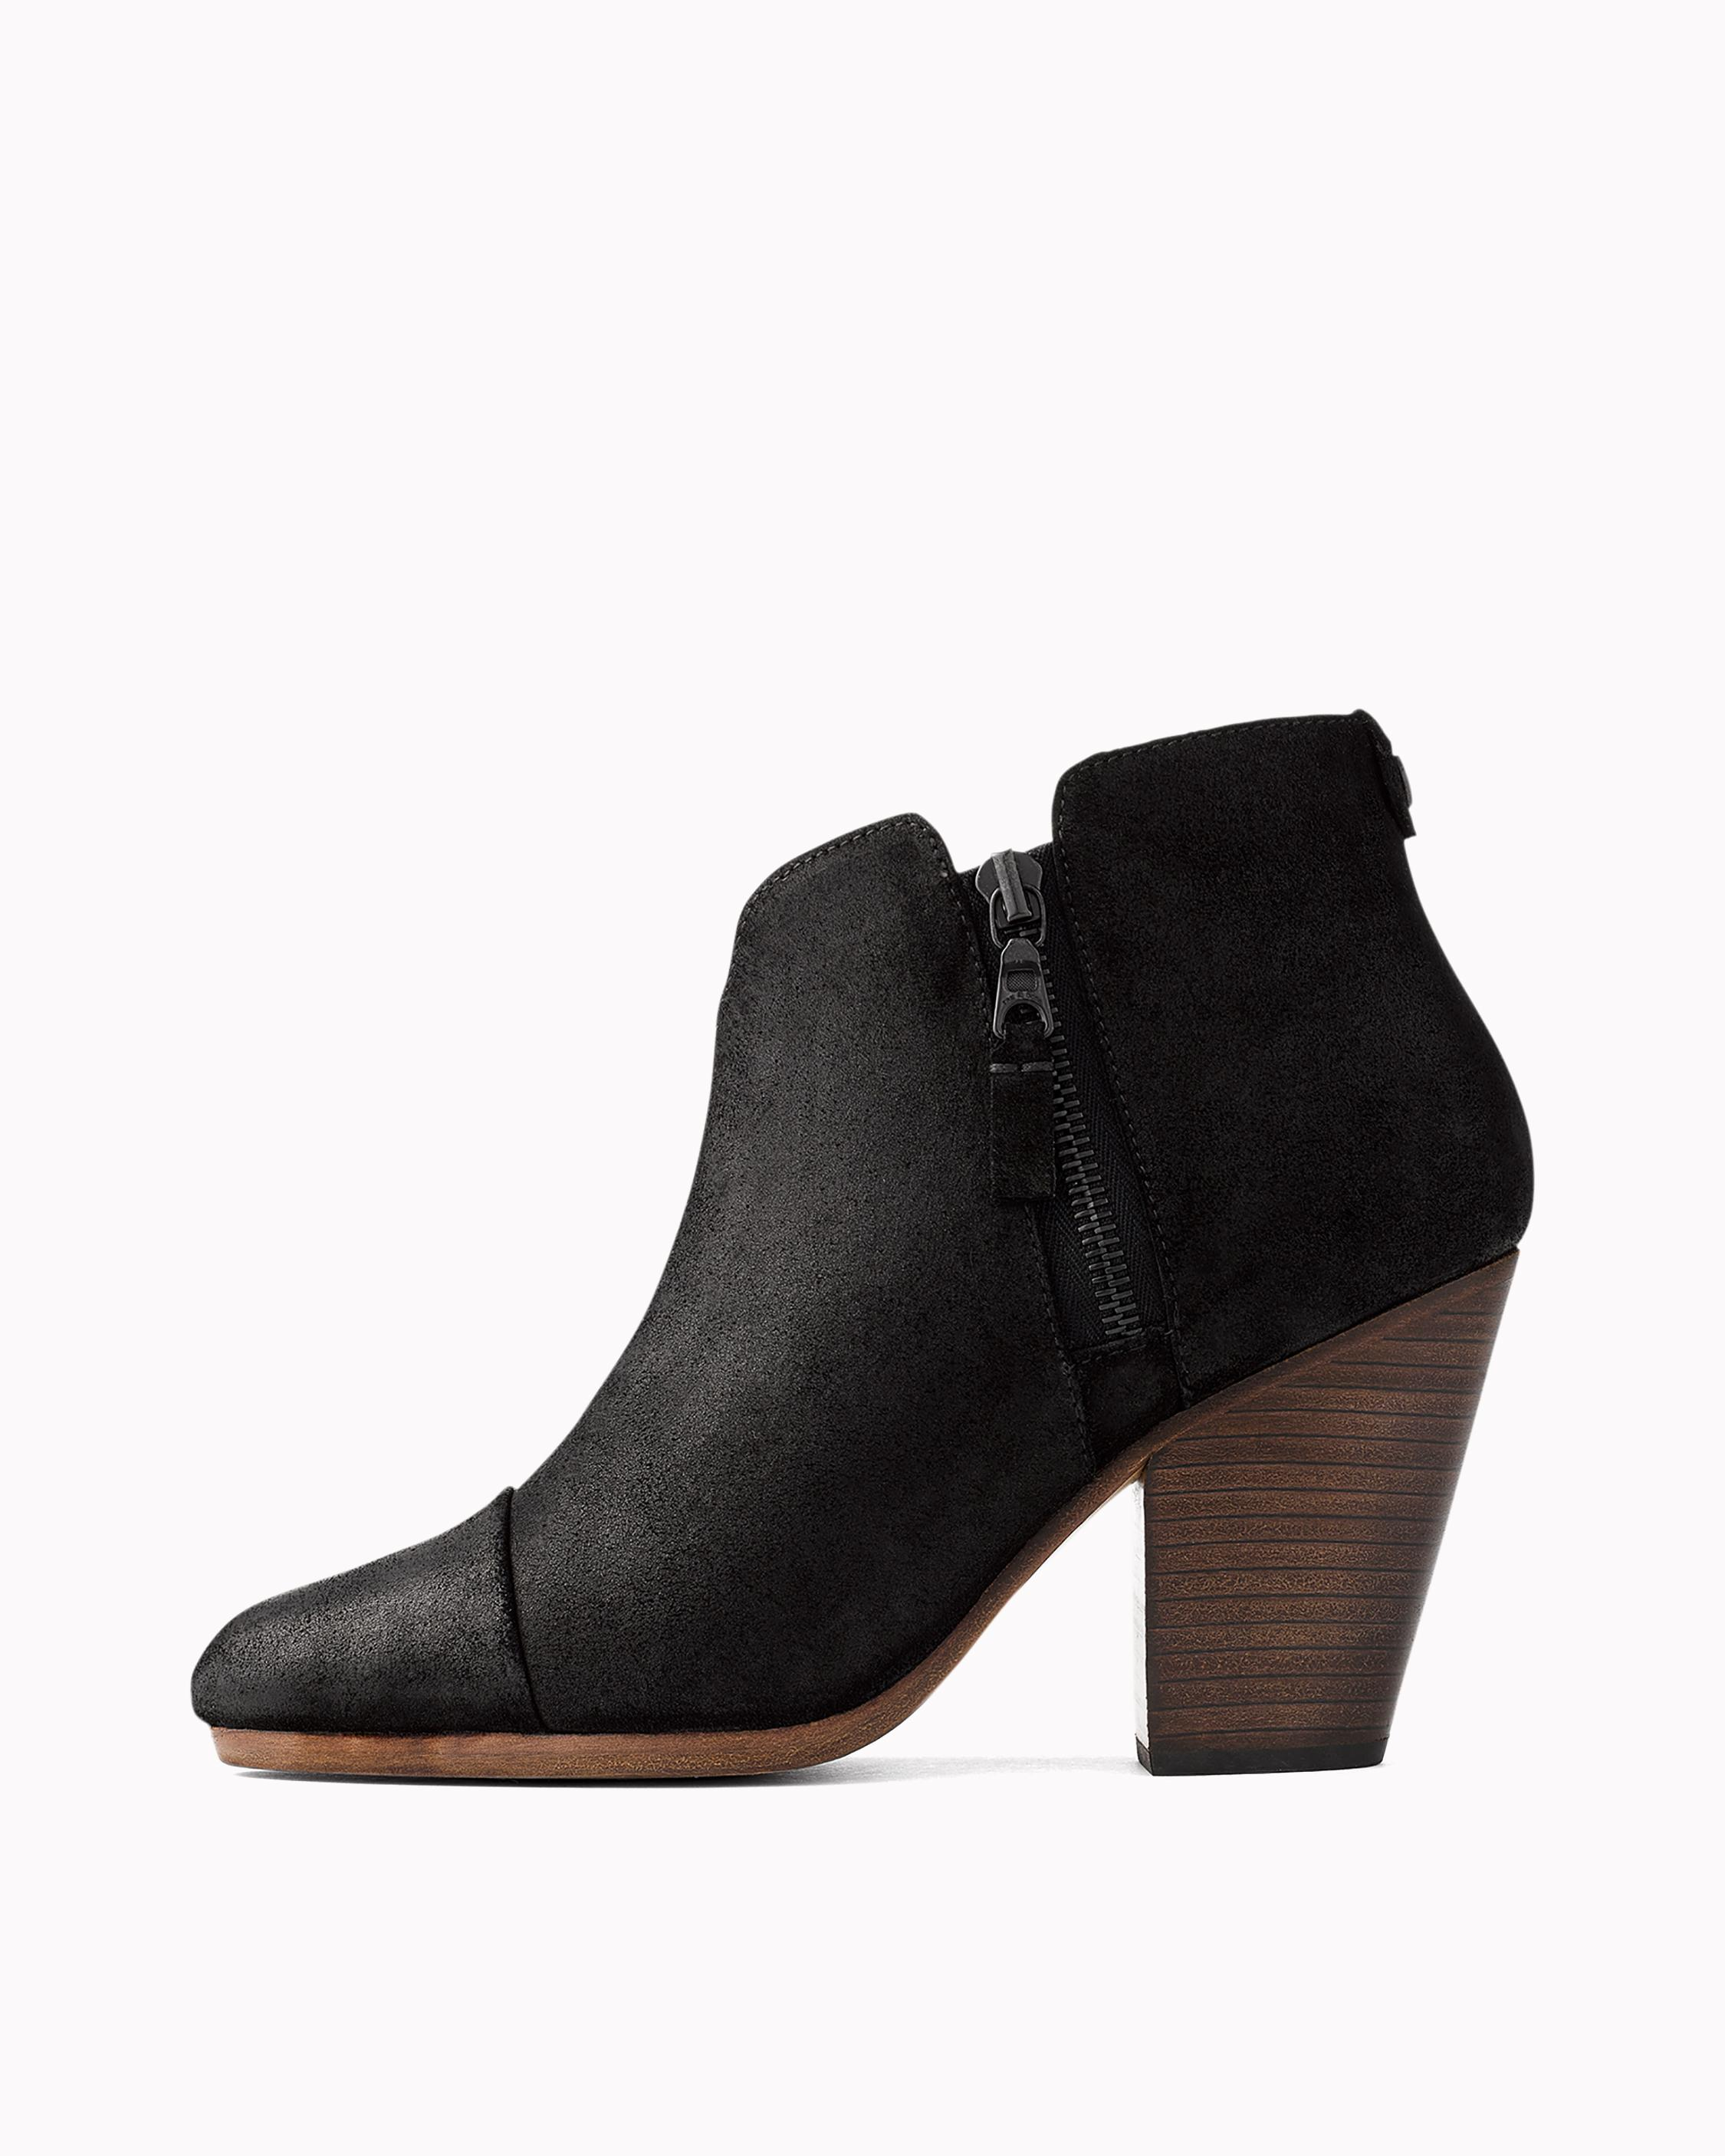 Margot boot - Black. $495.00 · RAG & BONE WILLOW BOOT